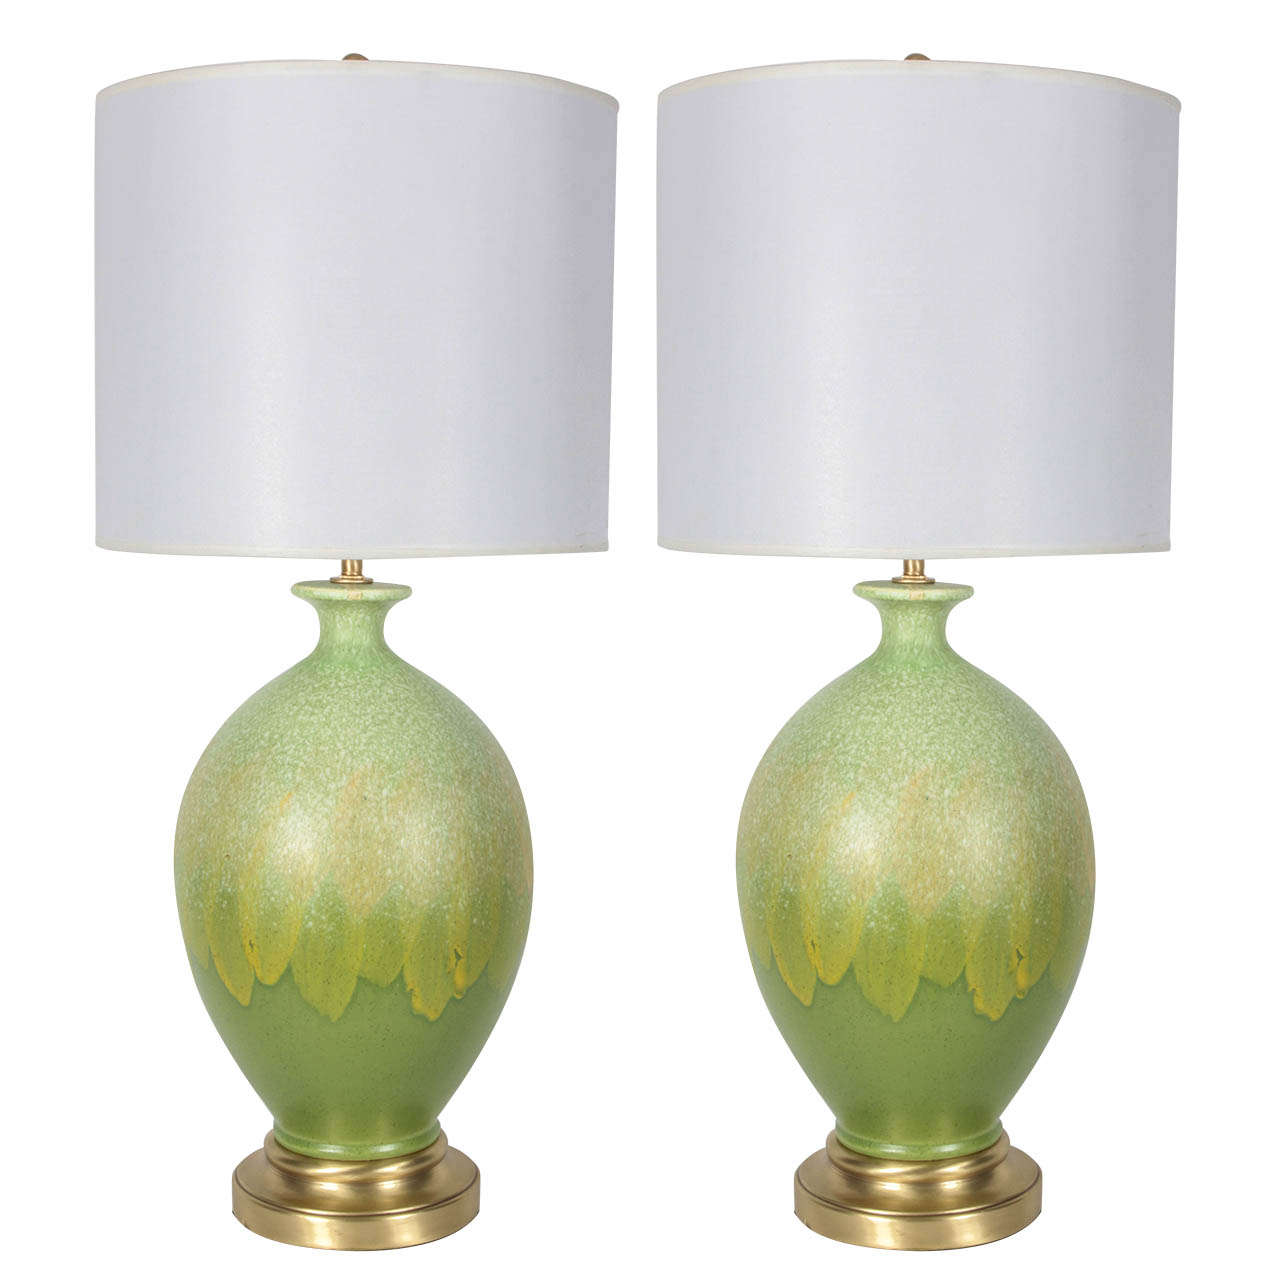 Pair of Vibrant Green Glazed Ceramic Lamps 1